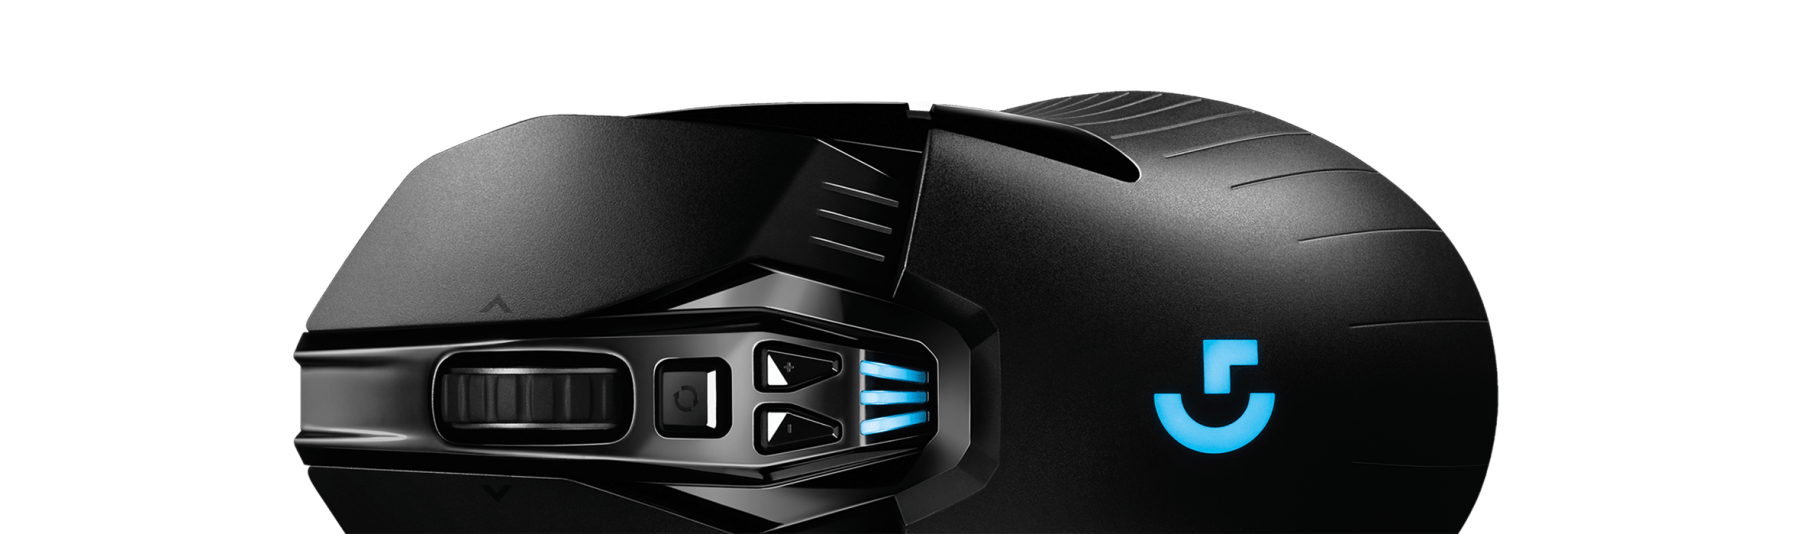 Wireless Logitech G mouse